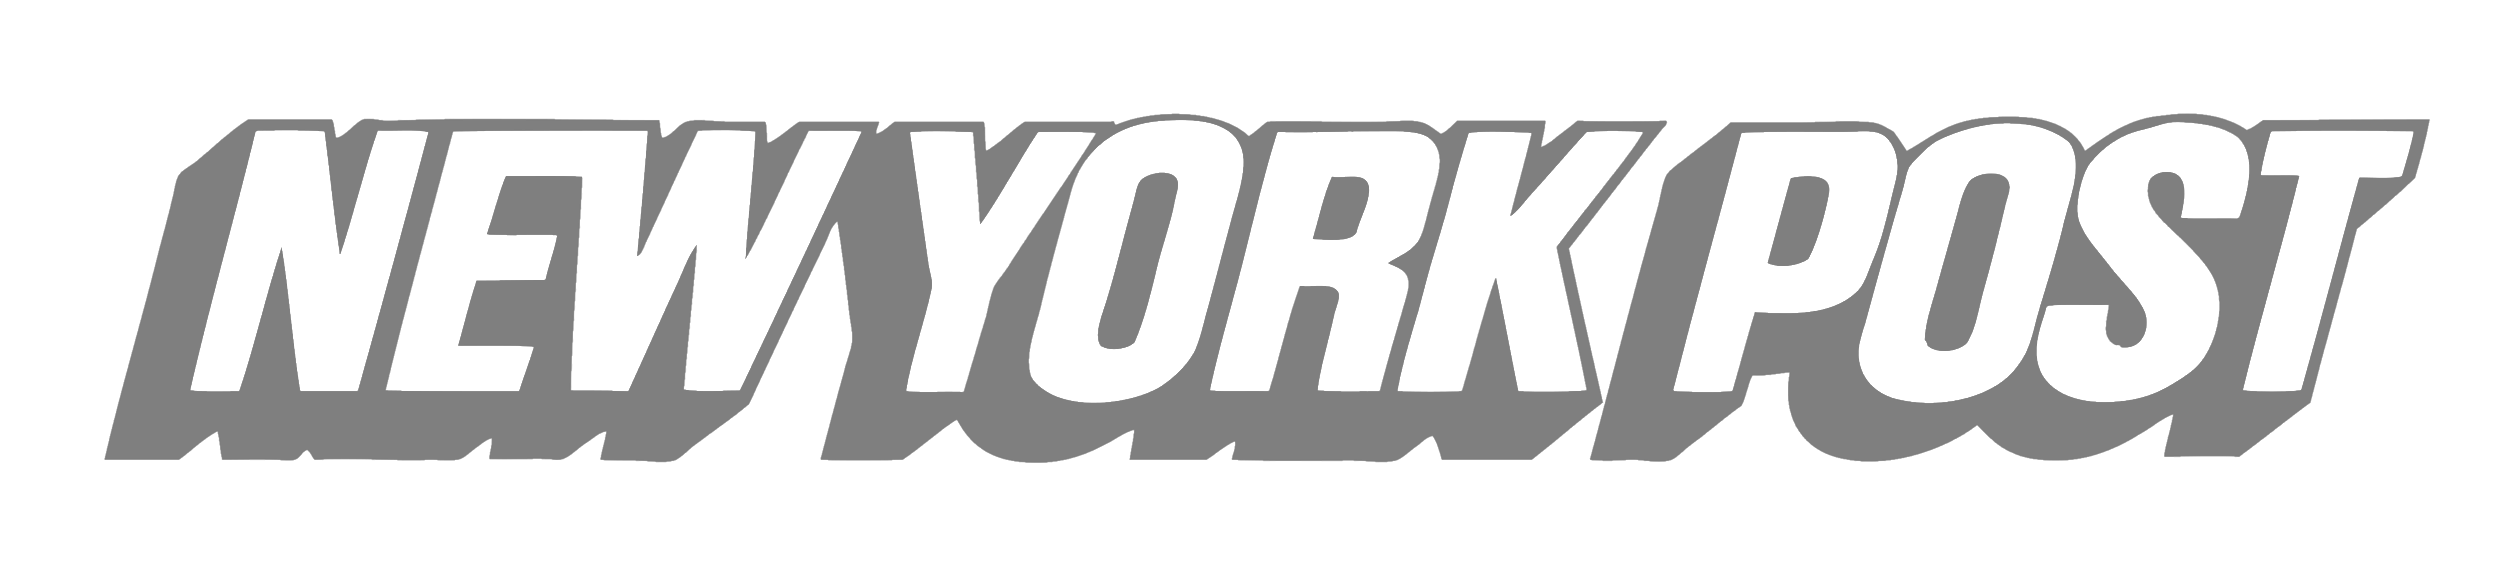 New_York_Post_logo_NYP.png